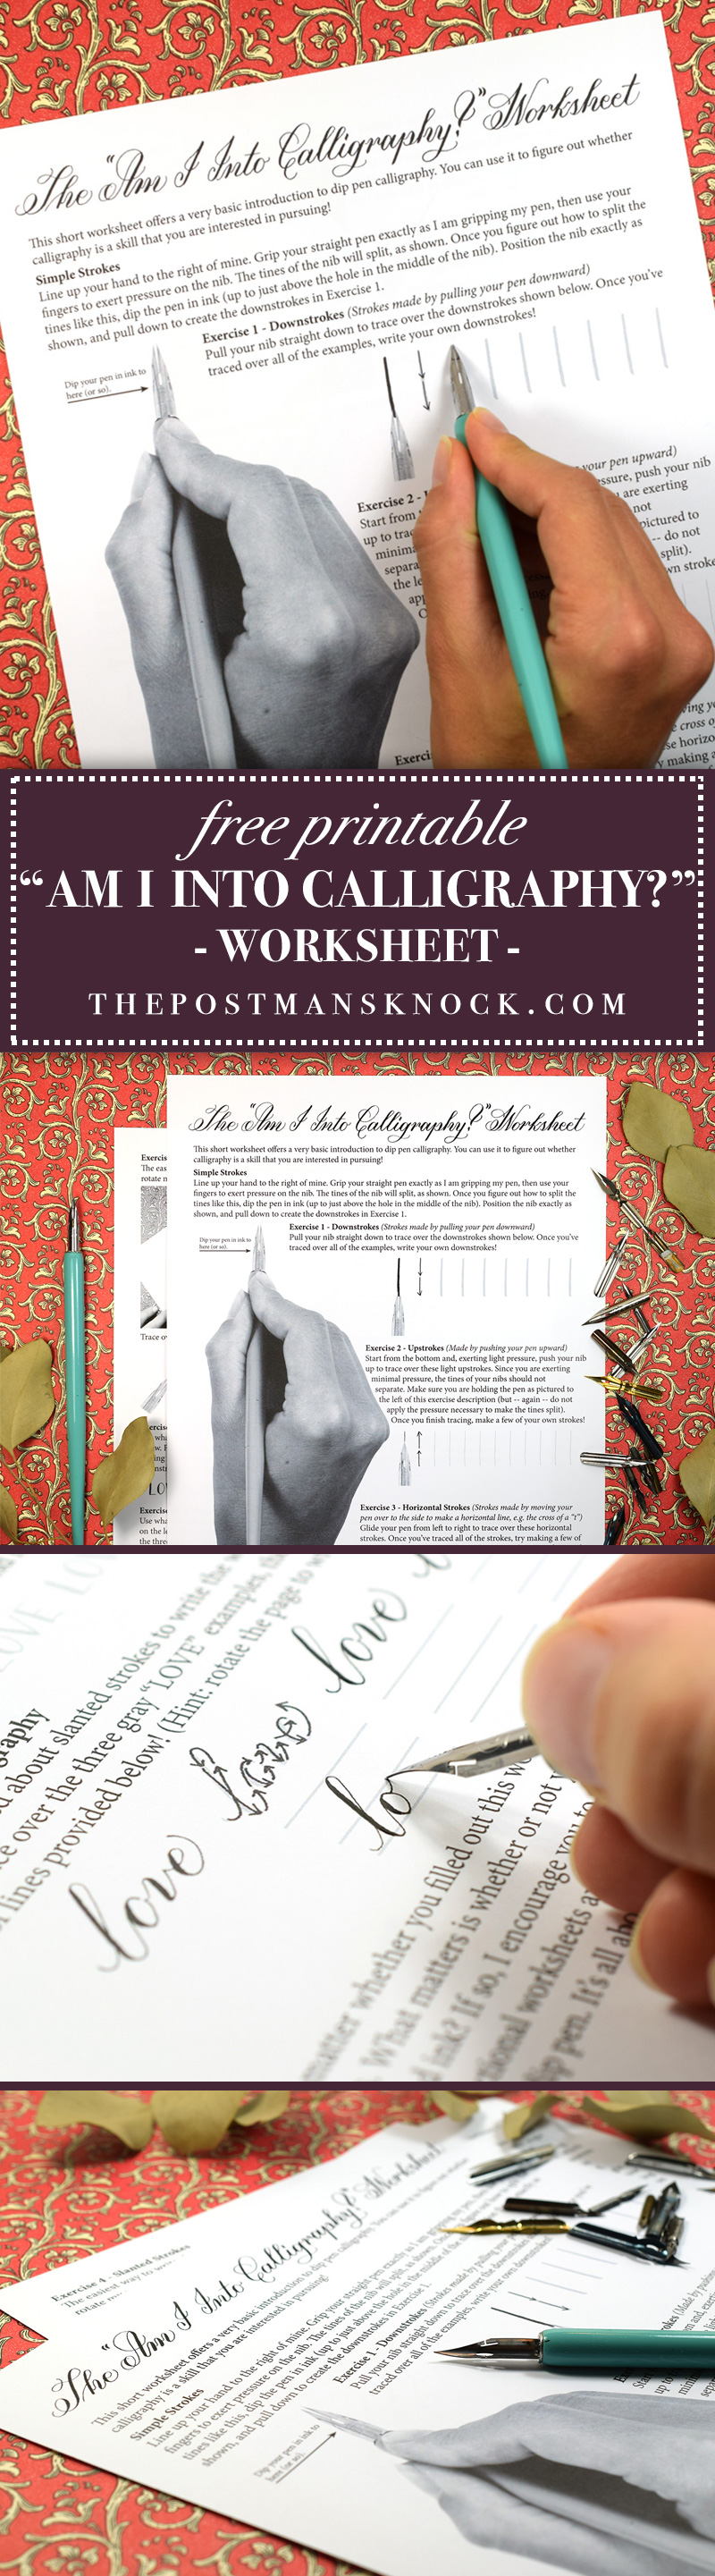 Book Cover Typography Worksheet ~ Fool proof fonts to use for your book cover design an epic